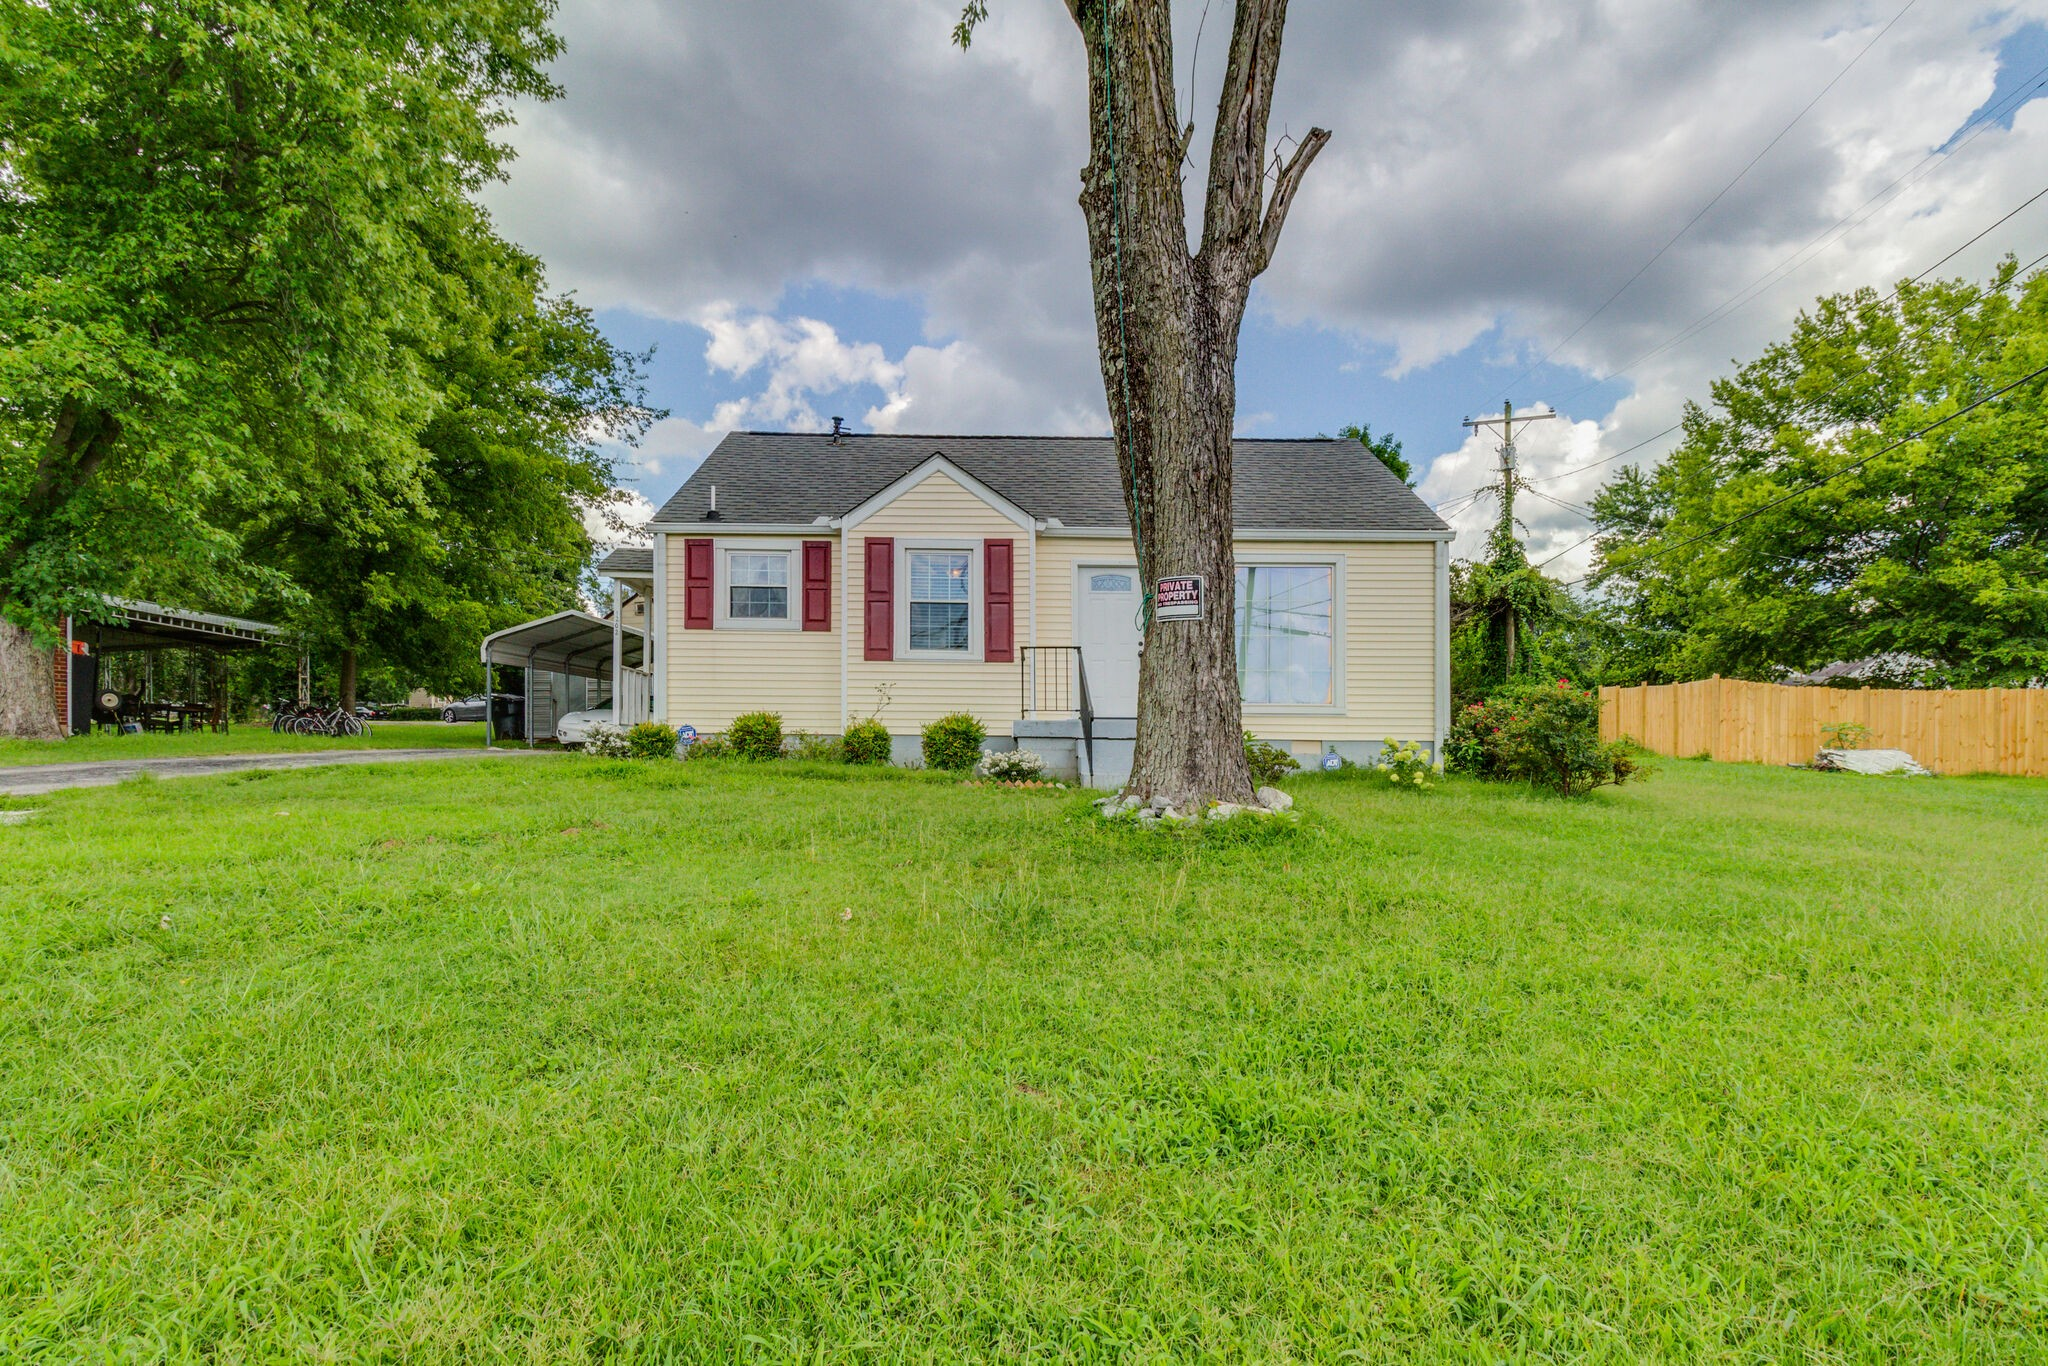 Cute cottage home located near the airport and interstate!  Easy access to downtown and Opry Mills!  HVAC, roof, windows and cabinets are approx. 6 years old!  Hardwood flooring throughout! Storage building, refrigerator and washer and dryer remain.  Seller to sell as-is! Home is very well kept!